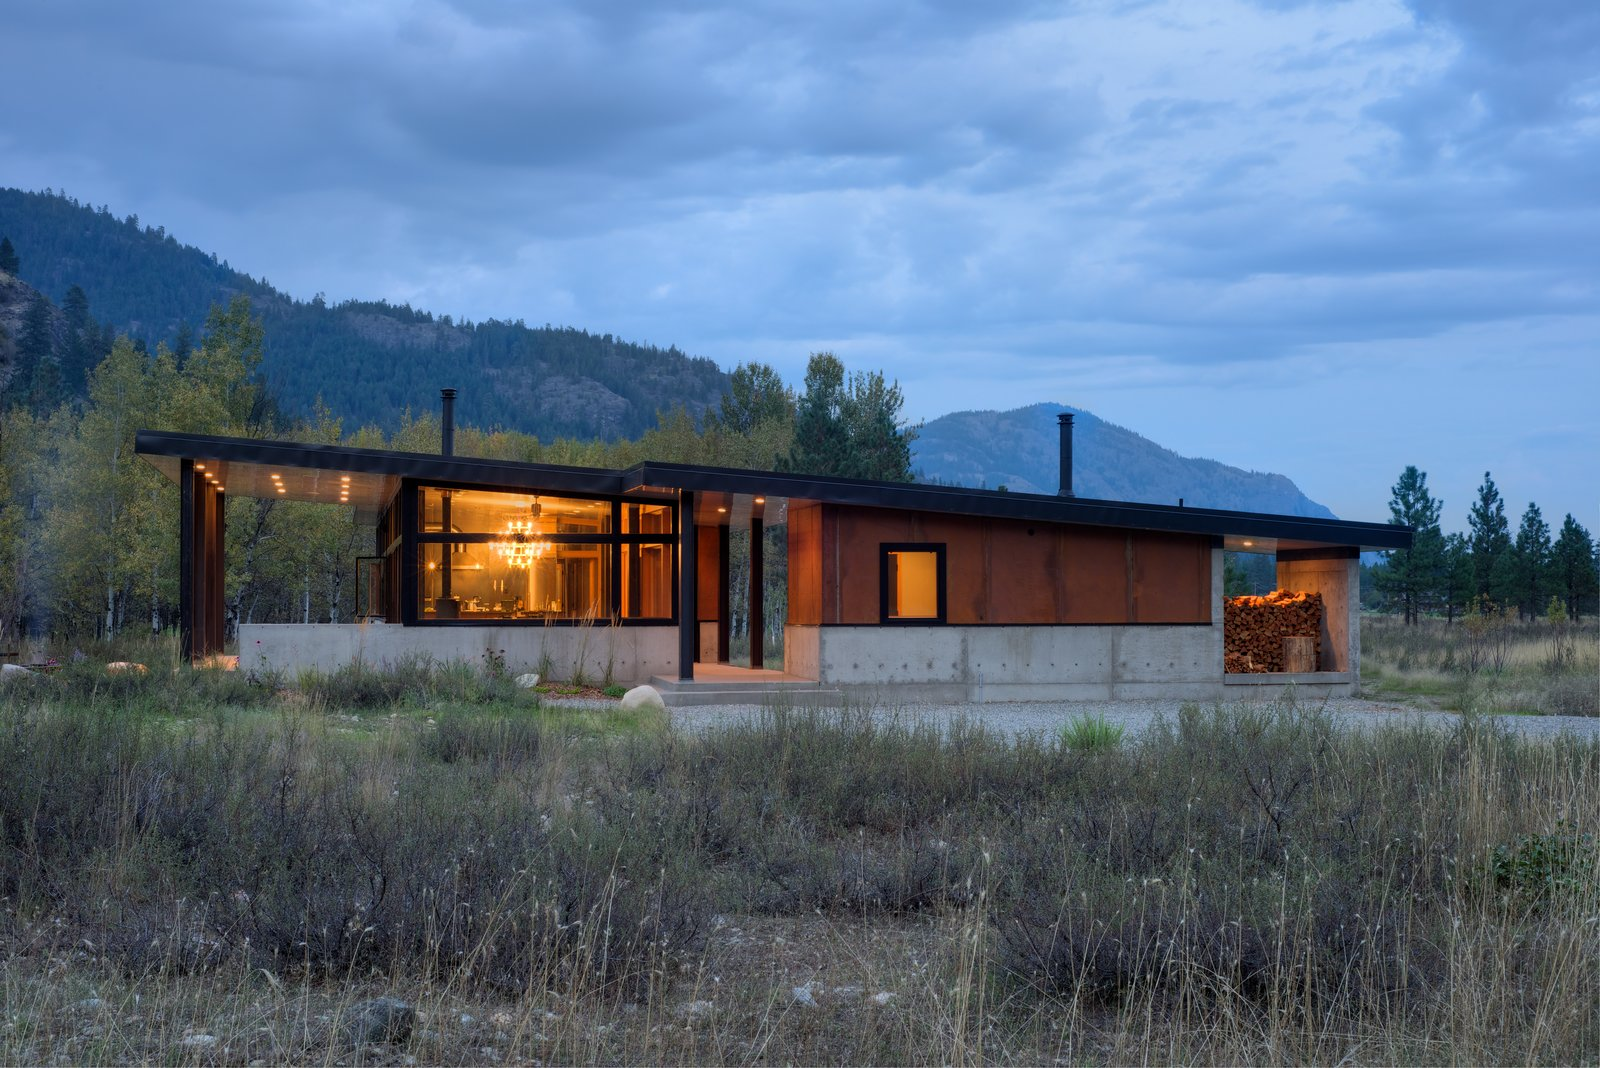 The house is divided in two: on the left, the main house consists of an expansive kitchen, living, and dining space, plus sleeping accommodations. On the right, a smaller structure holds a sauna, shower, and ski wax room. The house's length is oriented along an east/west axis to maximize strong southern light and provide views of an aspen grove.  Cabins & Hideouts from Modern Mountain Retreat in Washington